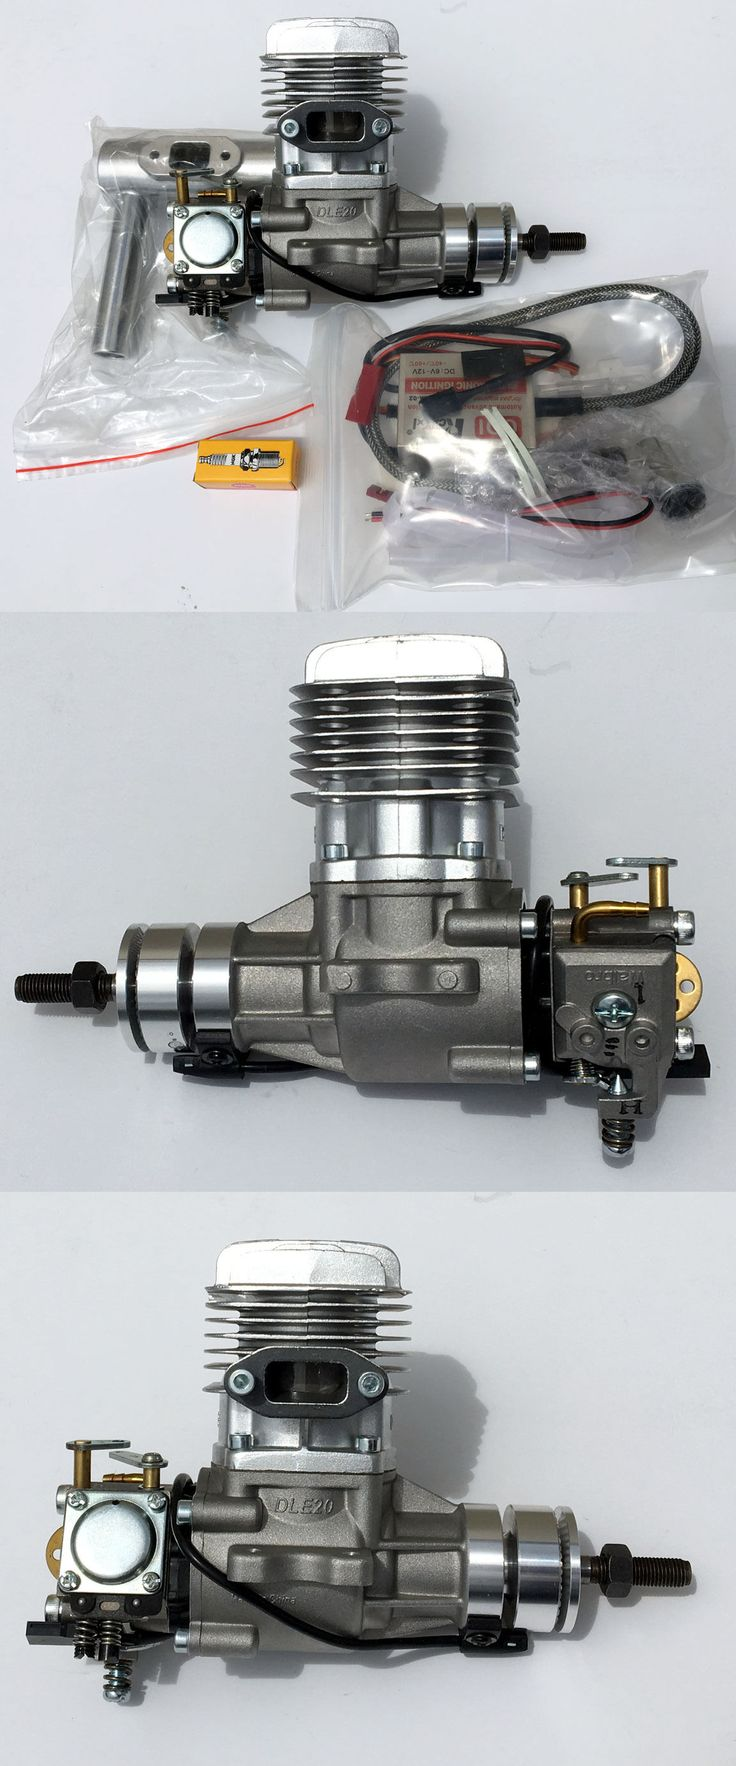 Harley manages to fit all the complex electronics and emissions gear - Gas Nitro Engines 182189 Dle20 20cc Gasoline Engine W Electronic Igniton And Muffler New